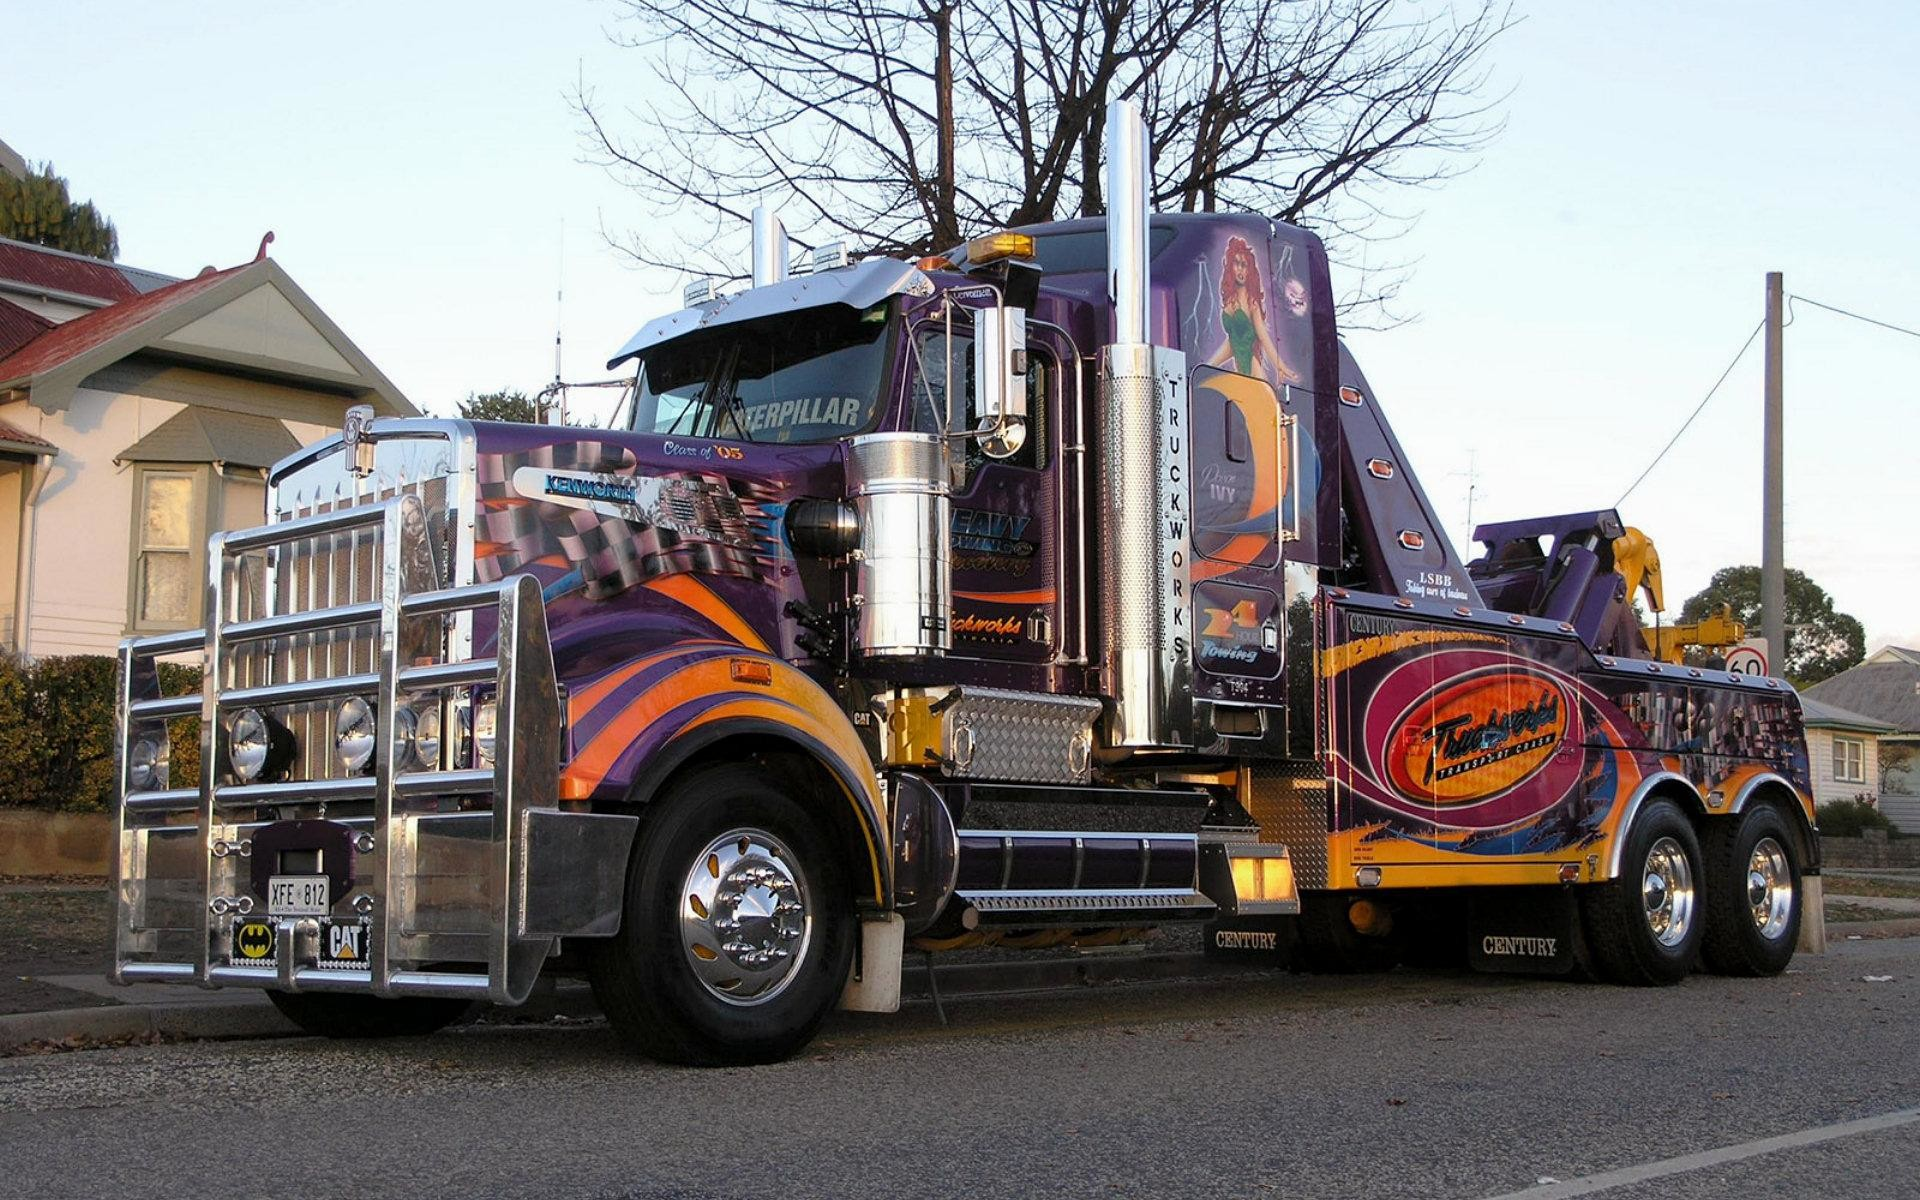 1920x1200 wallpaper.wiki-Colorful-Semi-Truck-Wallpaper-PIC-WPE001177